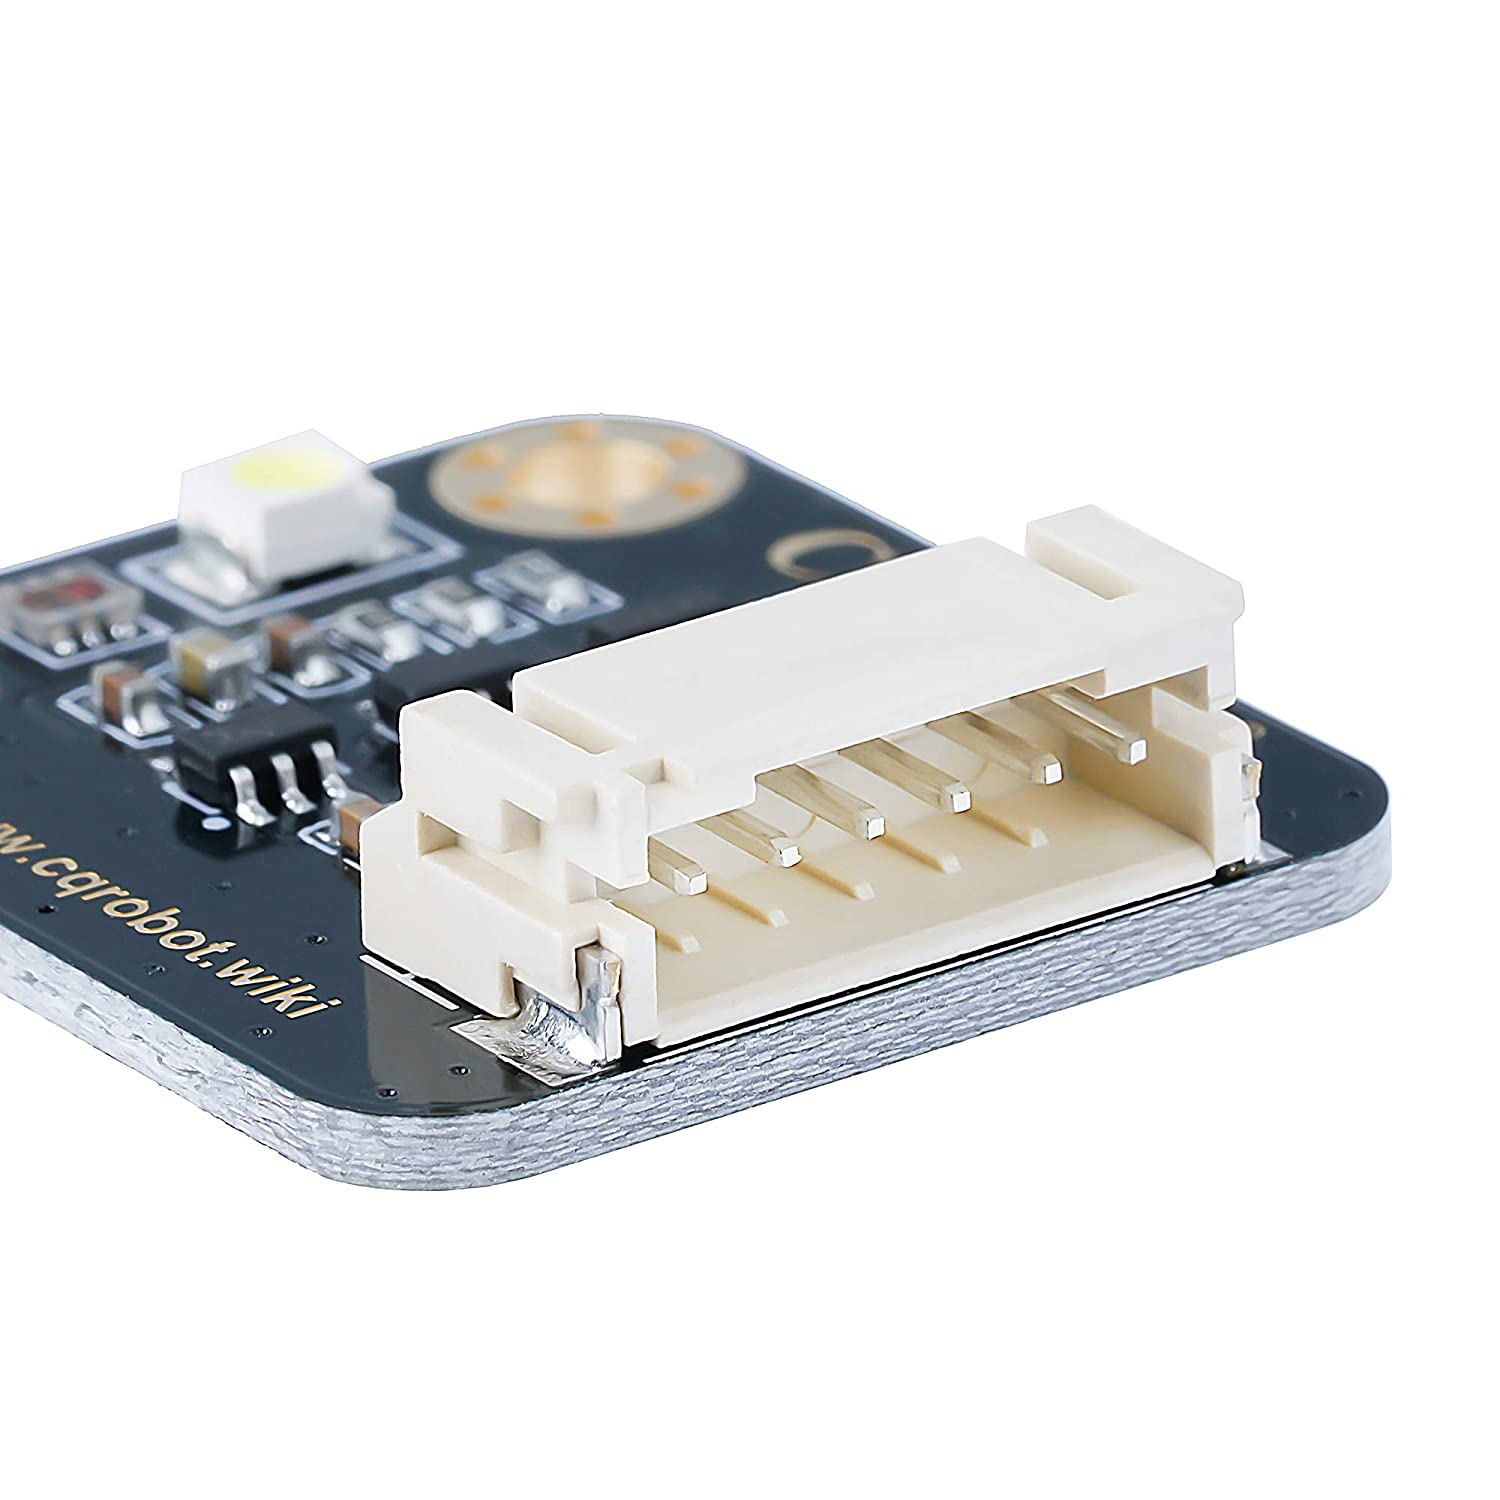 Output RGB Data And Light Intensity Table I2C Interface CQRobot Raspberry Pi//Arduino // STM32 TCS34725FN RGB Color Sensor for Ambient Light Test Product Color Verification And Classification.